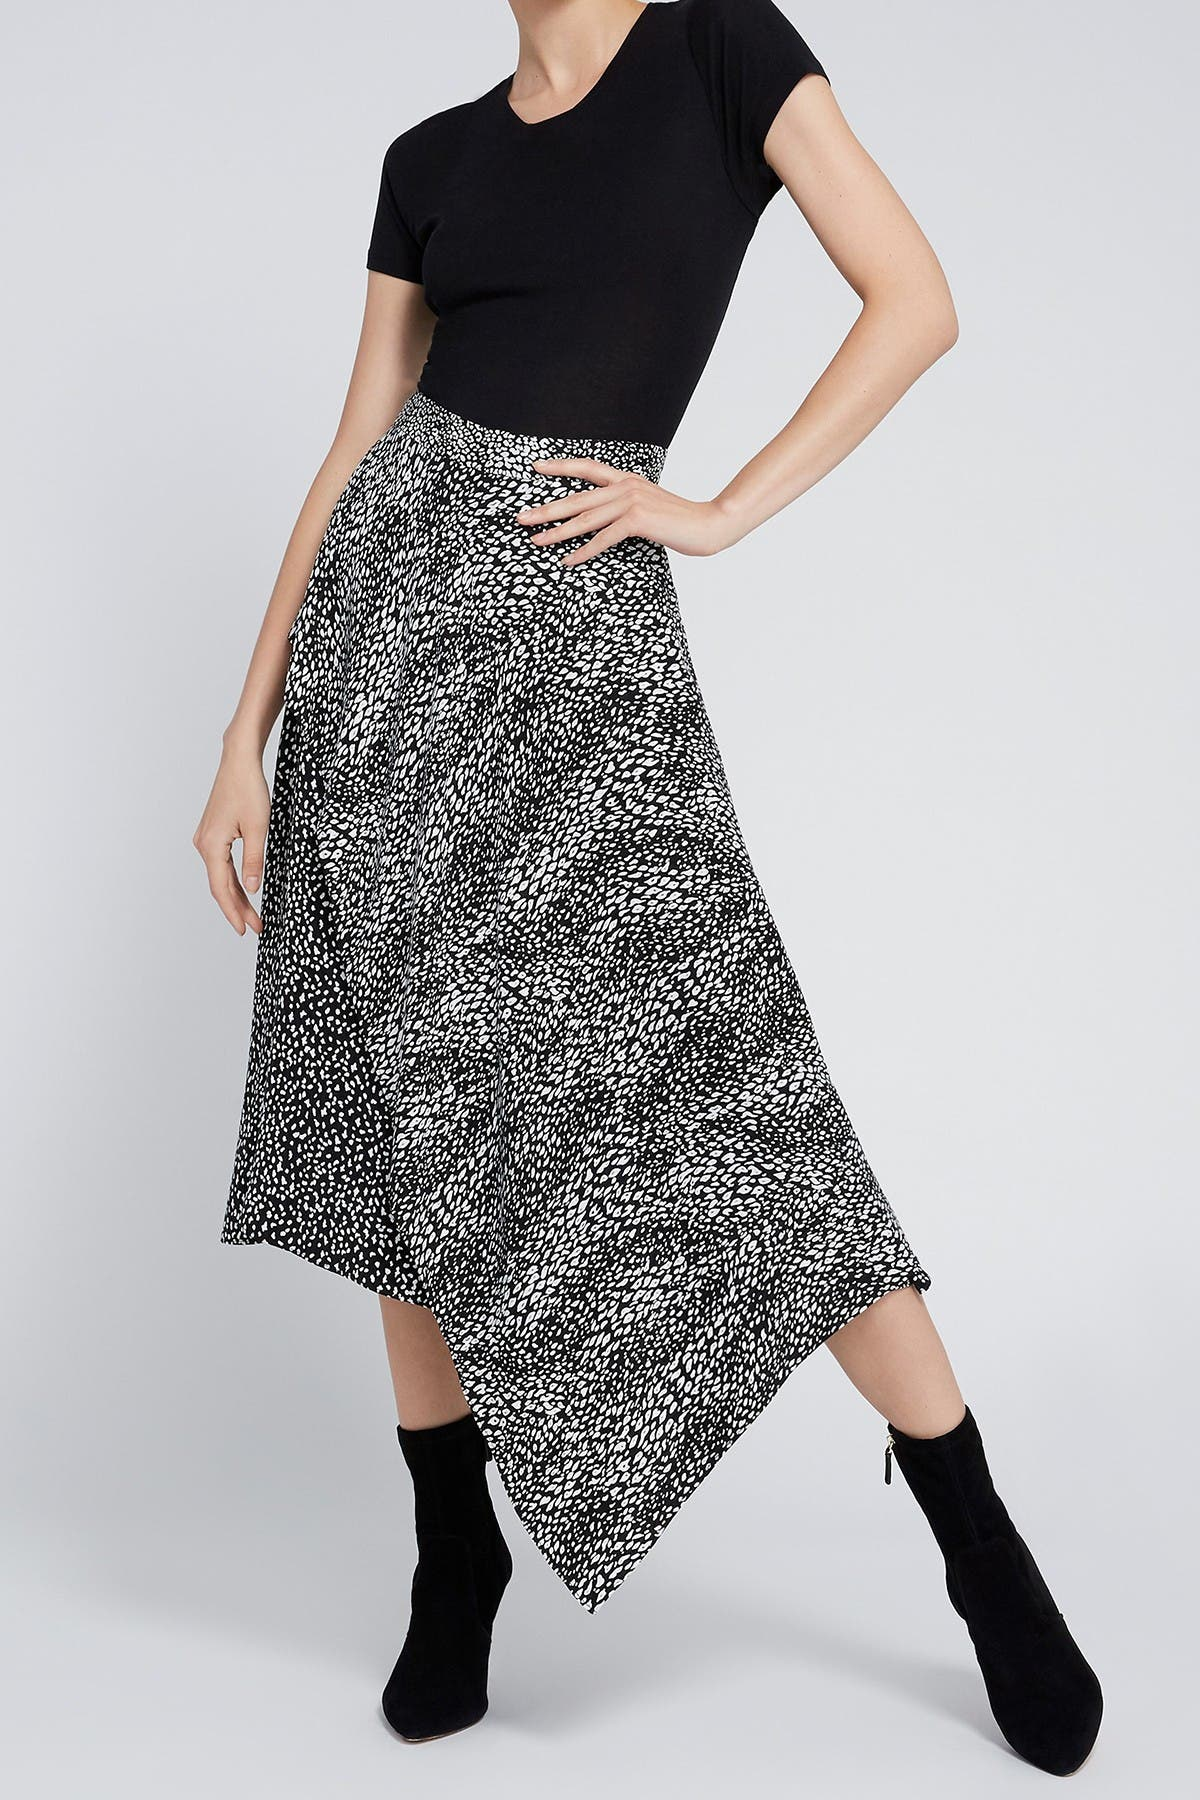 Image of alice + olivia Danita Double Layer A-Line Skirt